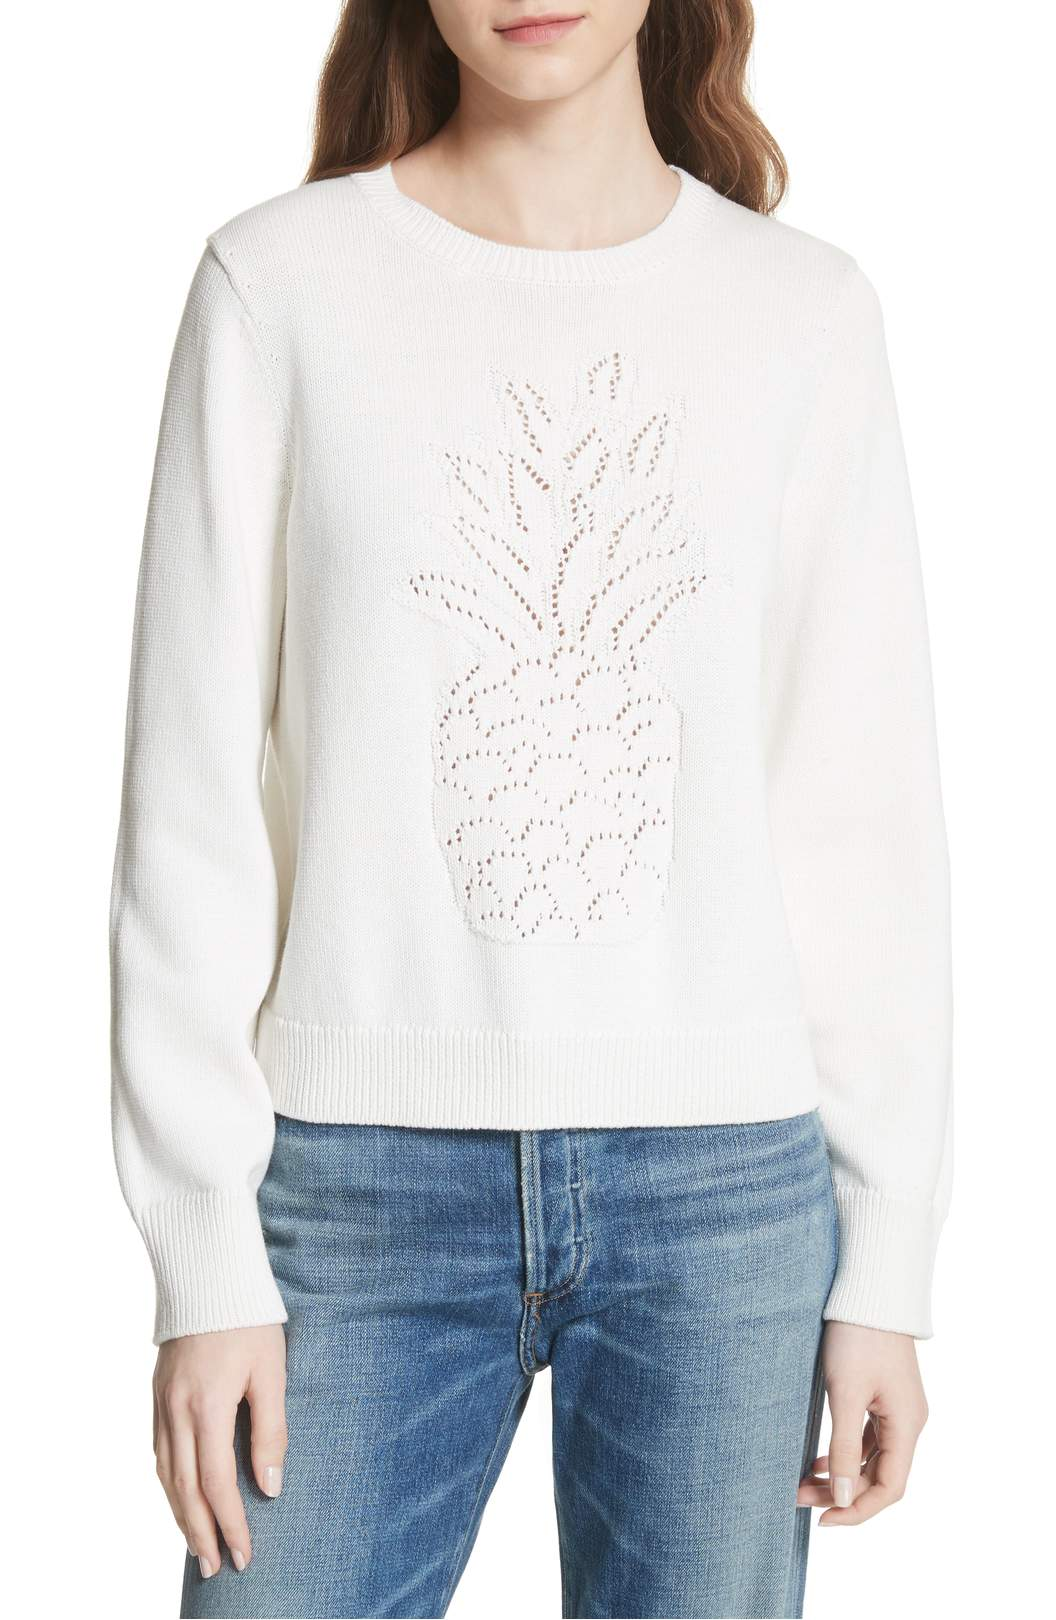 https://shop.nordstrom.com/s/joie-barin-pineapple-cotton-sweater/4868621?origin=keywordsearch-personalizedsort&fashioncolor=PORCELAIN